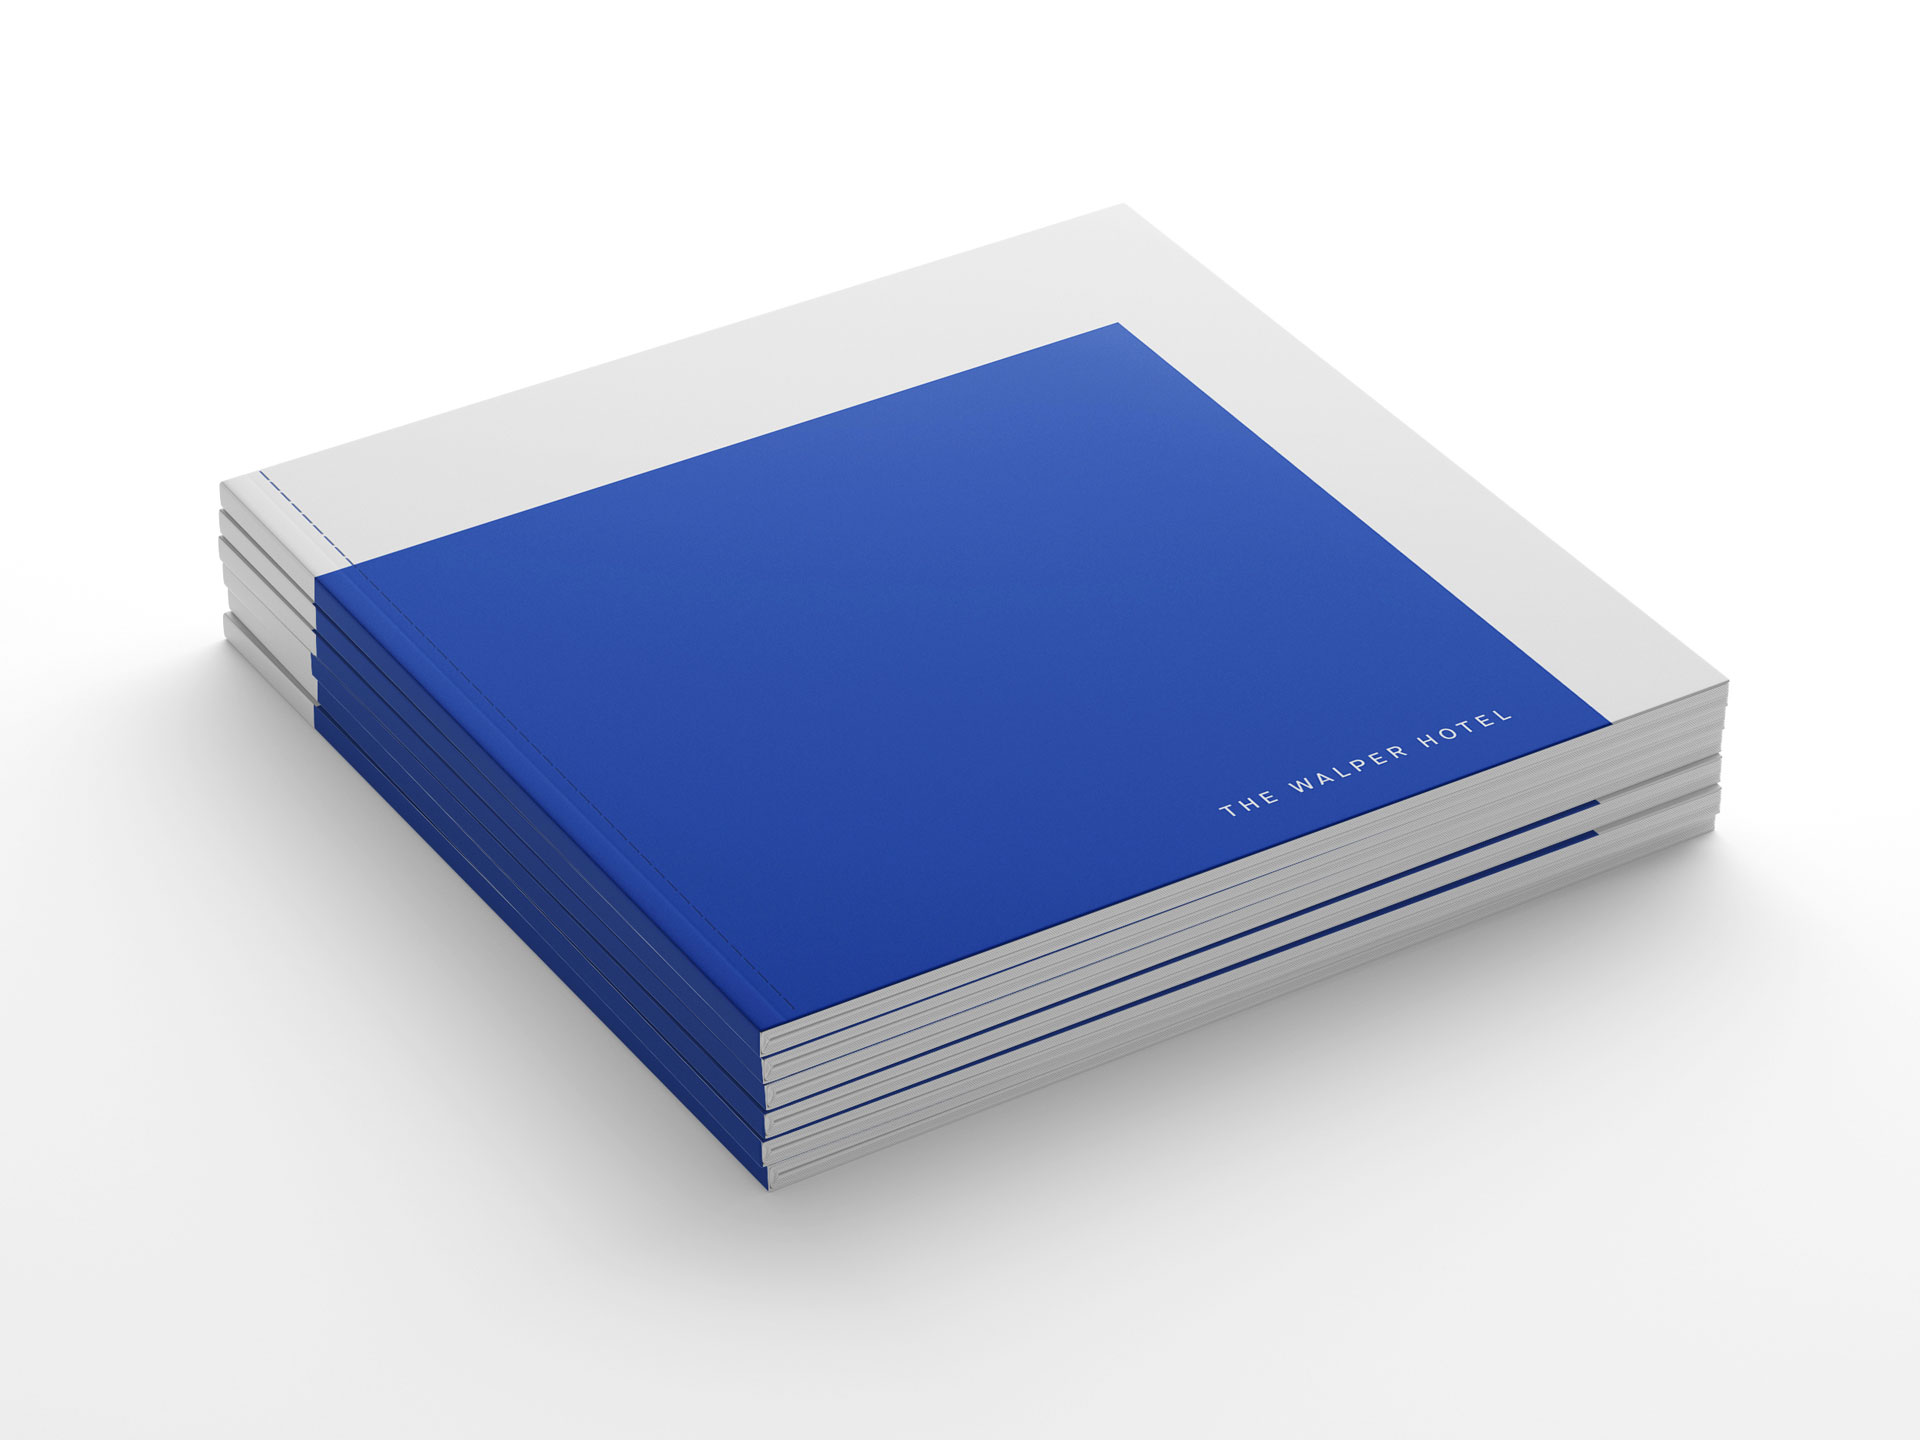 Stack of Walper Hotel books with blue cover